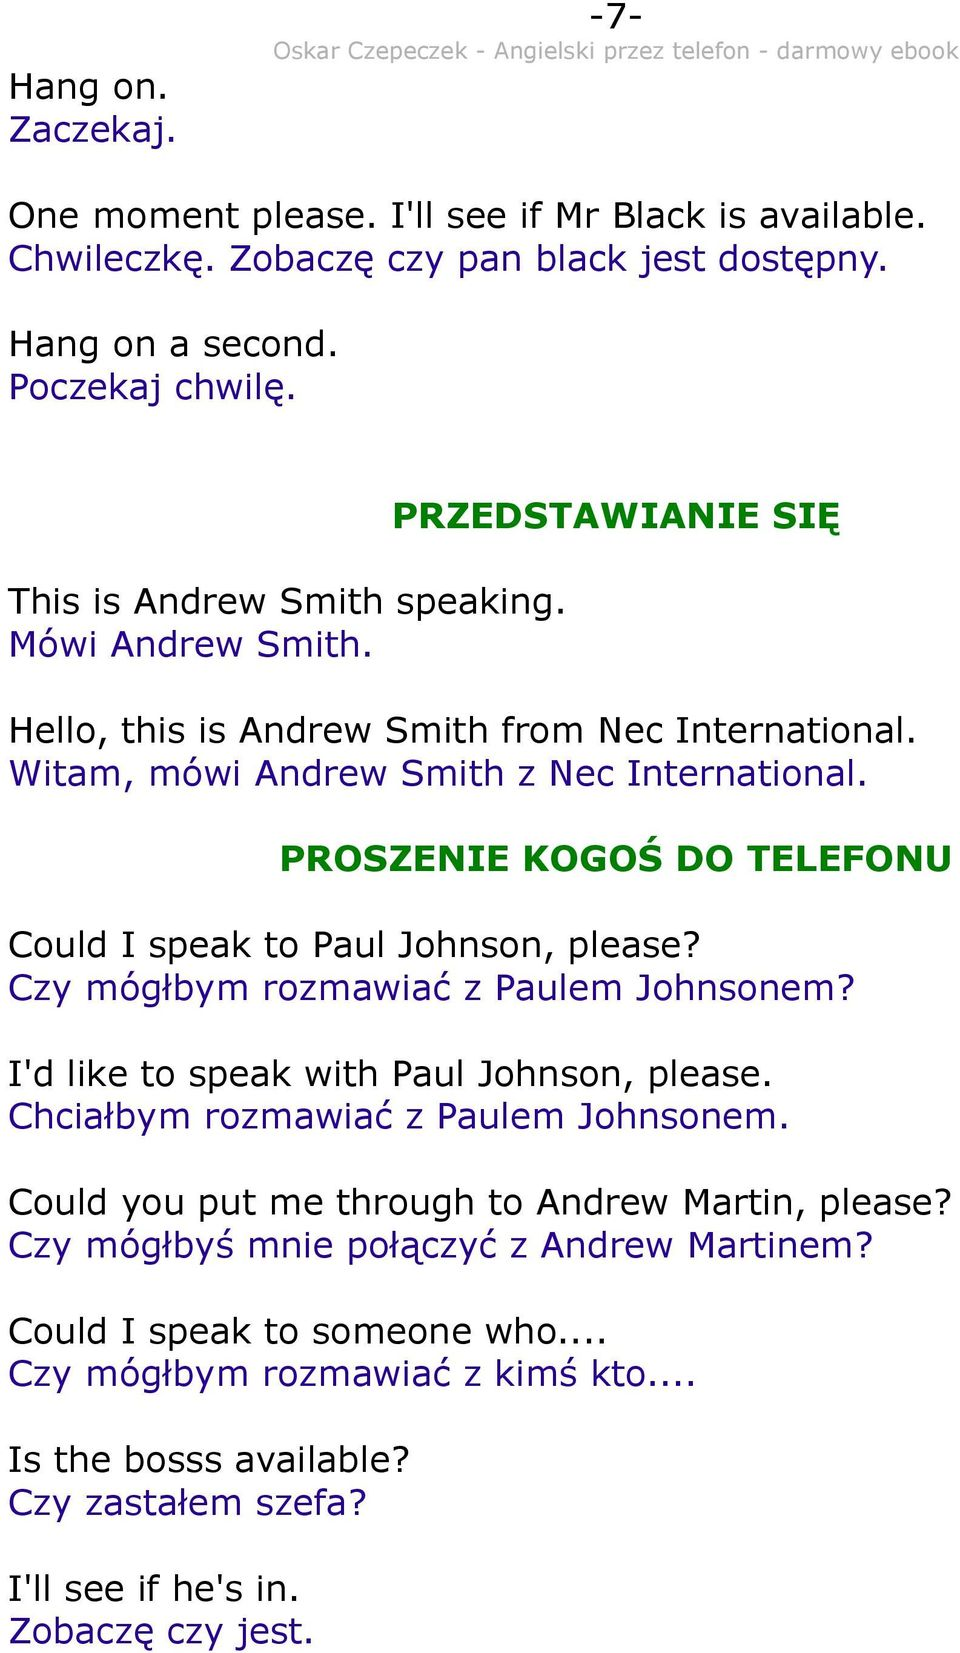 PROSZENIE KOGOŚ DO TELEFONU Could I speak to Paul Johnson, please? Czy mógłbym rozmawiać z Paulem Johnsonem? I'd like to speak with Paul Johnson, please.